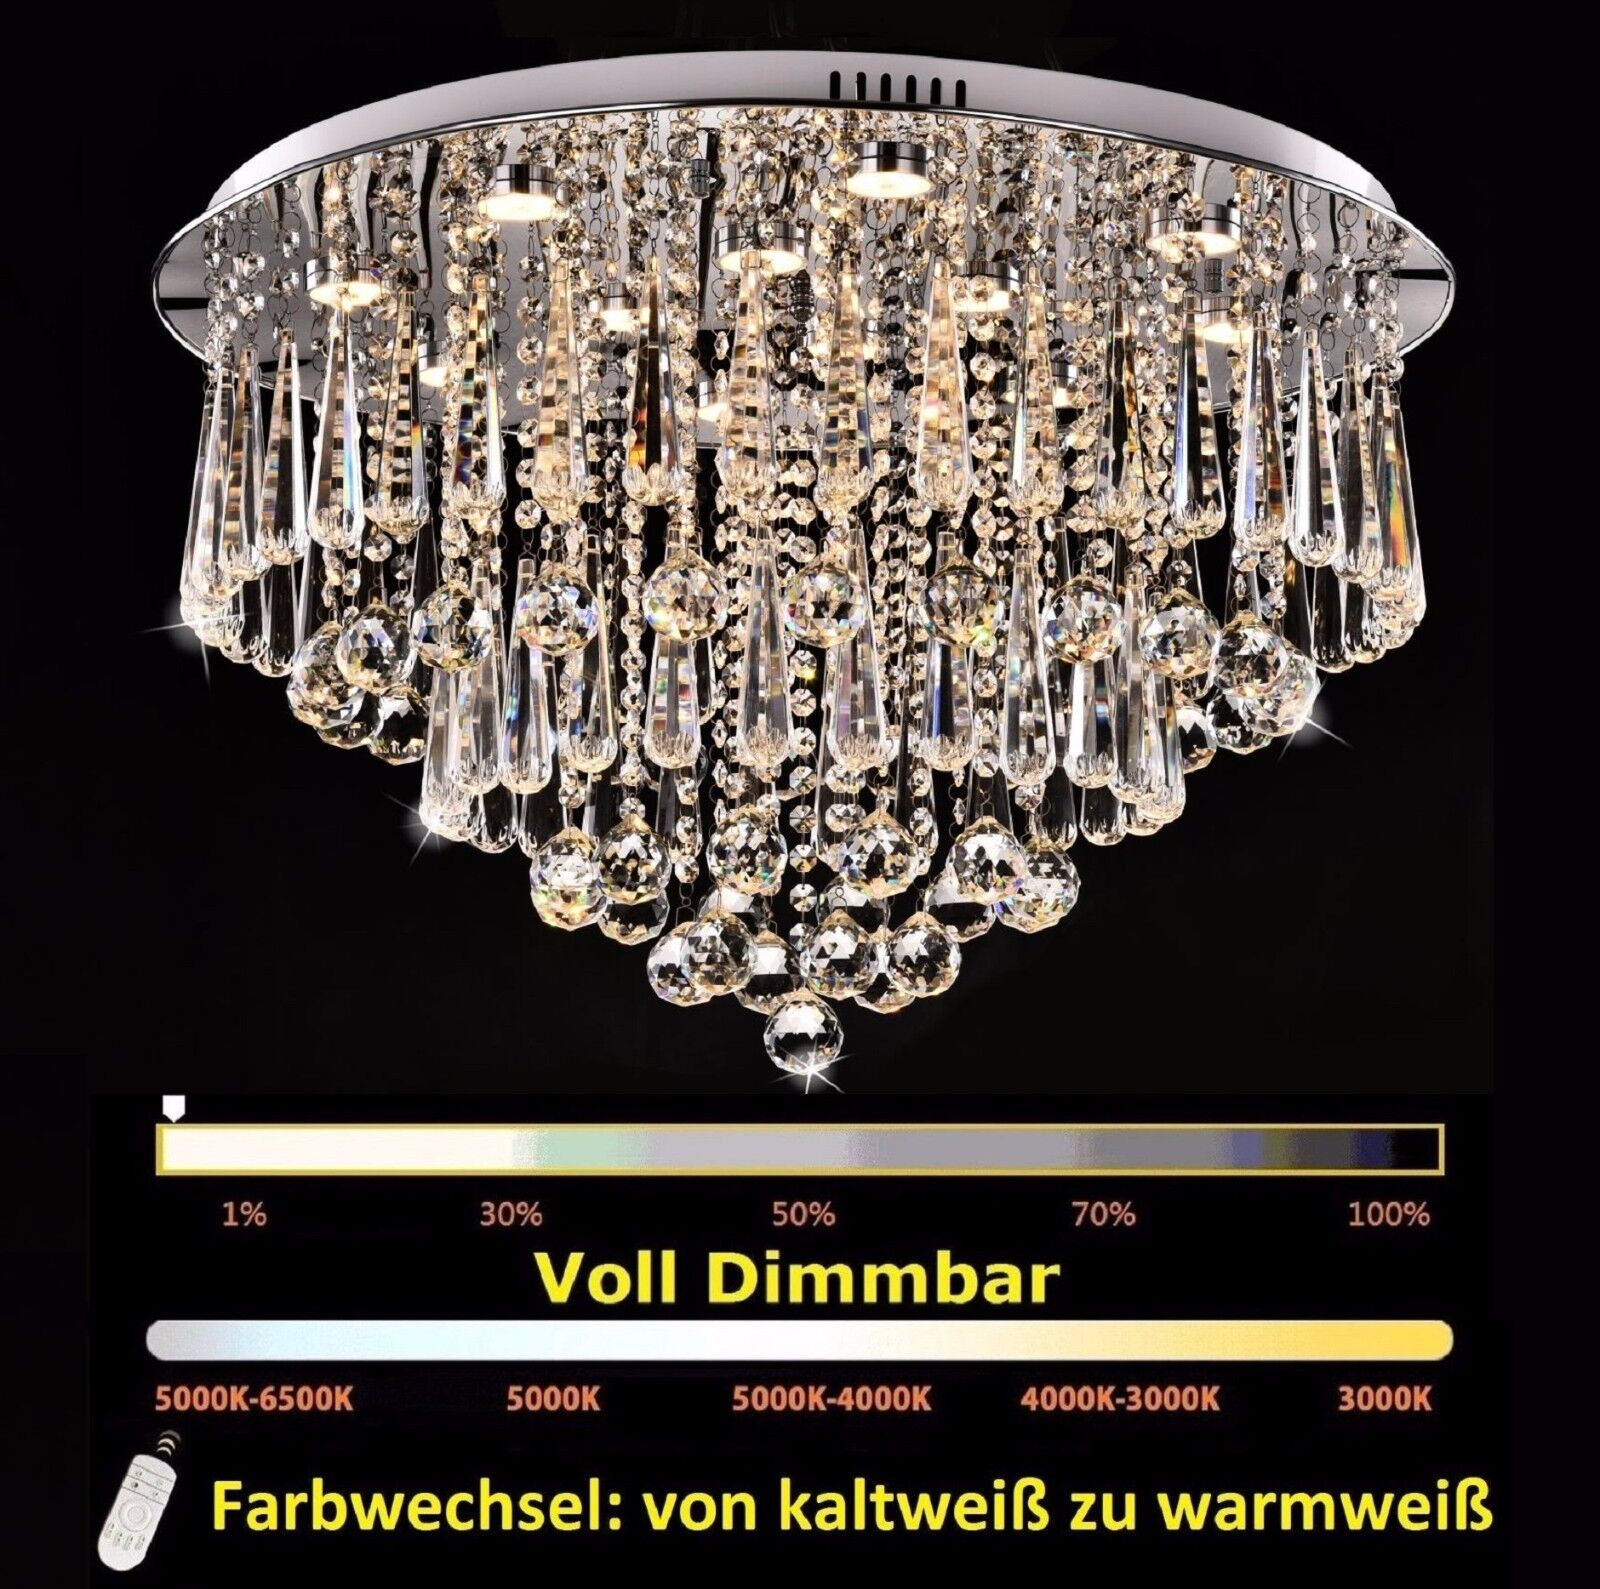 70cm dimmbar led kristall kronleuchter deckenlampe deckenleuchte h ngeleuchte eur 133 00. Black Bedroom Furniture Sets. Home Design Ideas